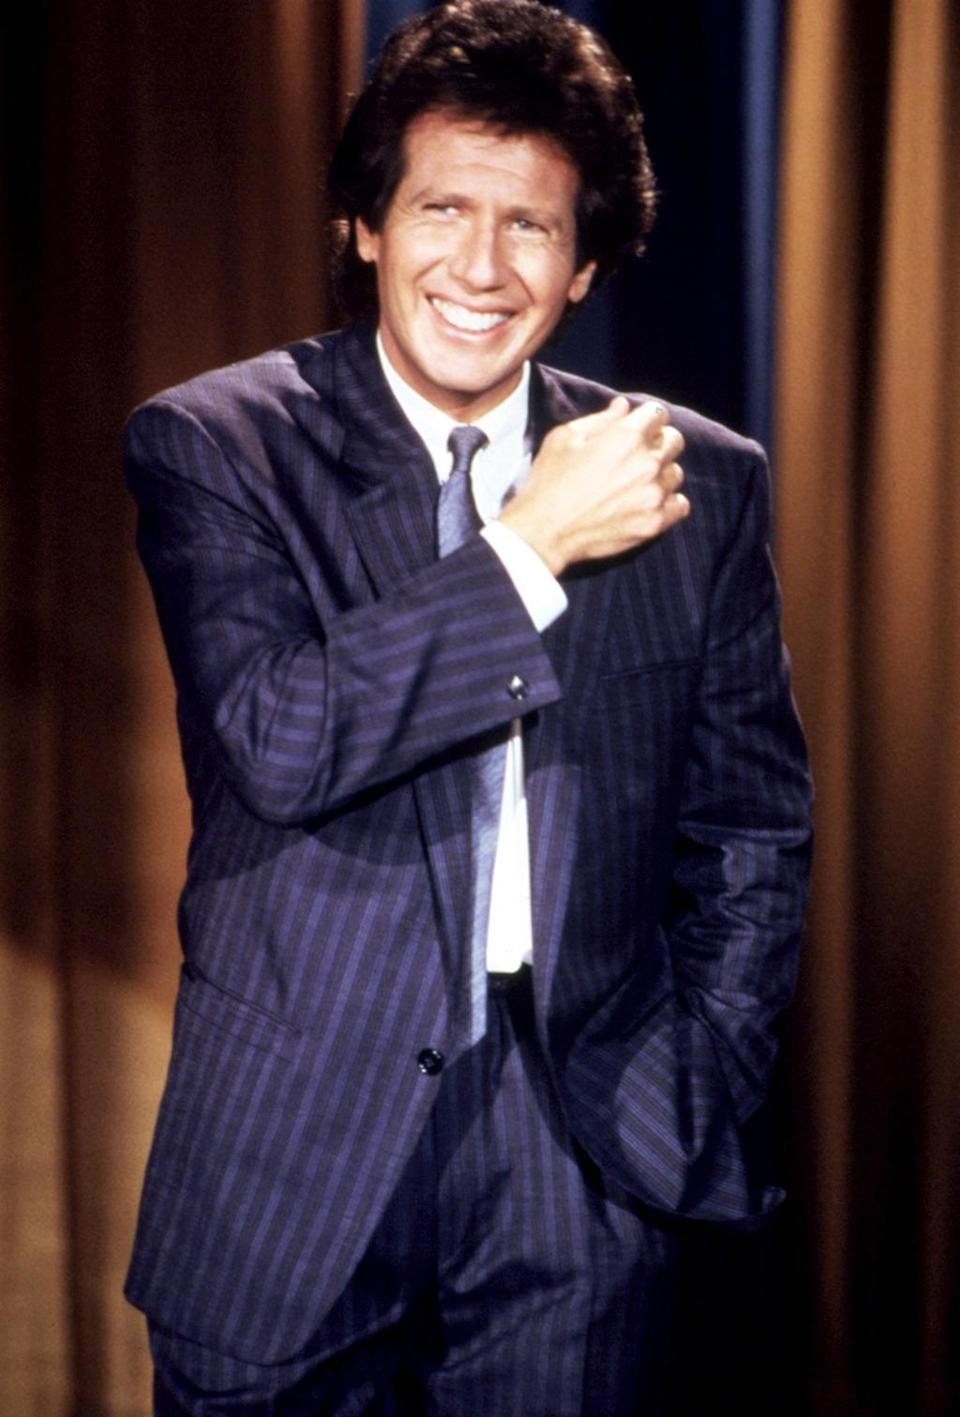 """<p><b>'The Tonight Show Starring Johnny Carson' (1981)</b></p><p>Initially making his name as a writer for <i>Sanford and Son</i> and <i>Welcome Back, Kotter</i>, Shandling made <a href=""""https://www.youtube.com/watch?v=Tg7fis-UY-s"""" rel=""""nofollow noopener"""" target=""""_blank"""" data-ylk=""""slk:his first network appearance as a stand-up comic"""" class=""""link rapid-noclick-resp"""">his first network appearance as a stand-up comic</a> on <i>The Tonight Show Starring Johnny Carson</i>, the holy grail for comedians, on March 18, 1981. He'd become a frequent and favorite guest, and just five years later, received his first invite to sit in for Carson as guest host.</p><p><i>(Credit: Everett Collection)</i></p>"""